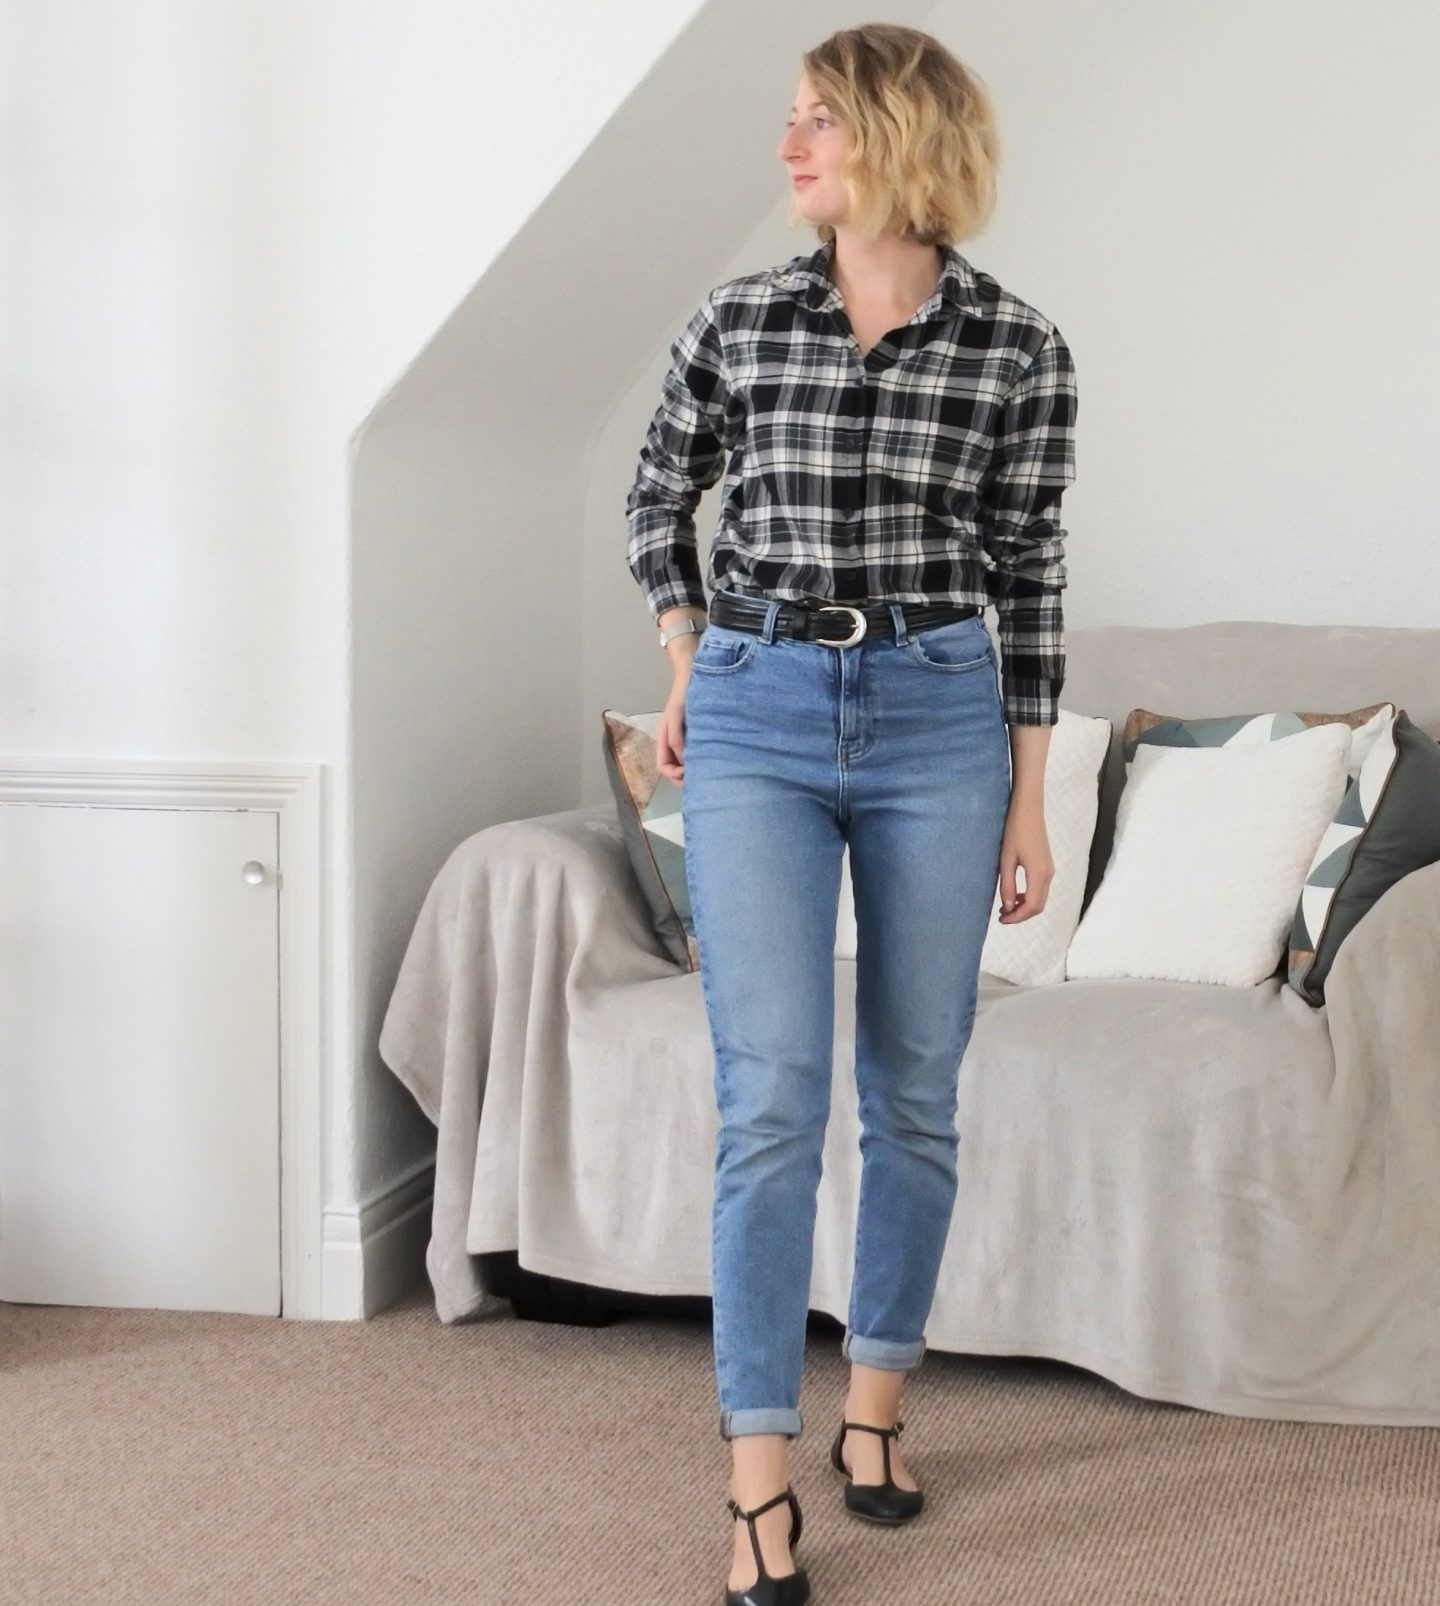 styling mom jeans look 2 check shirt and flats